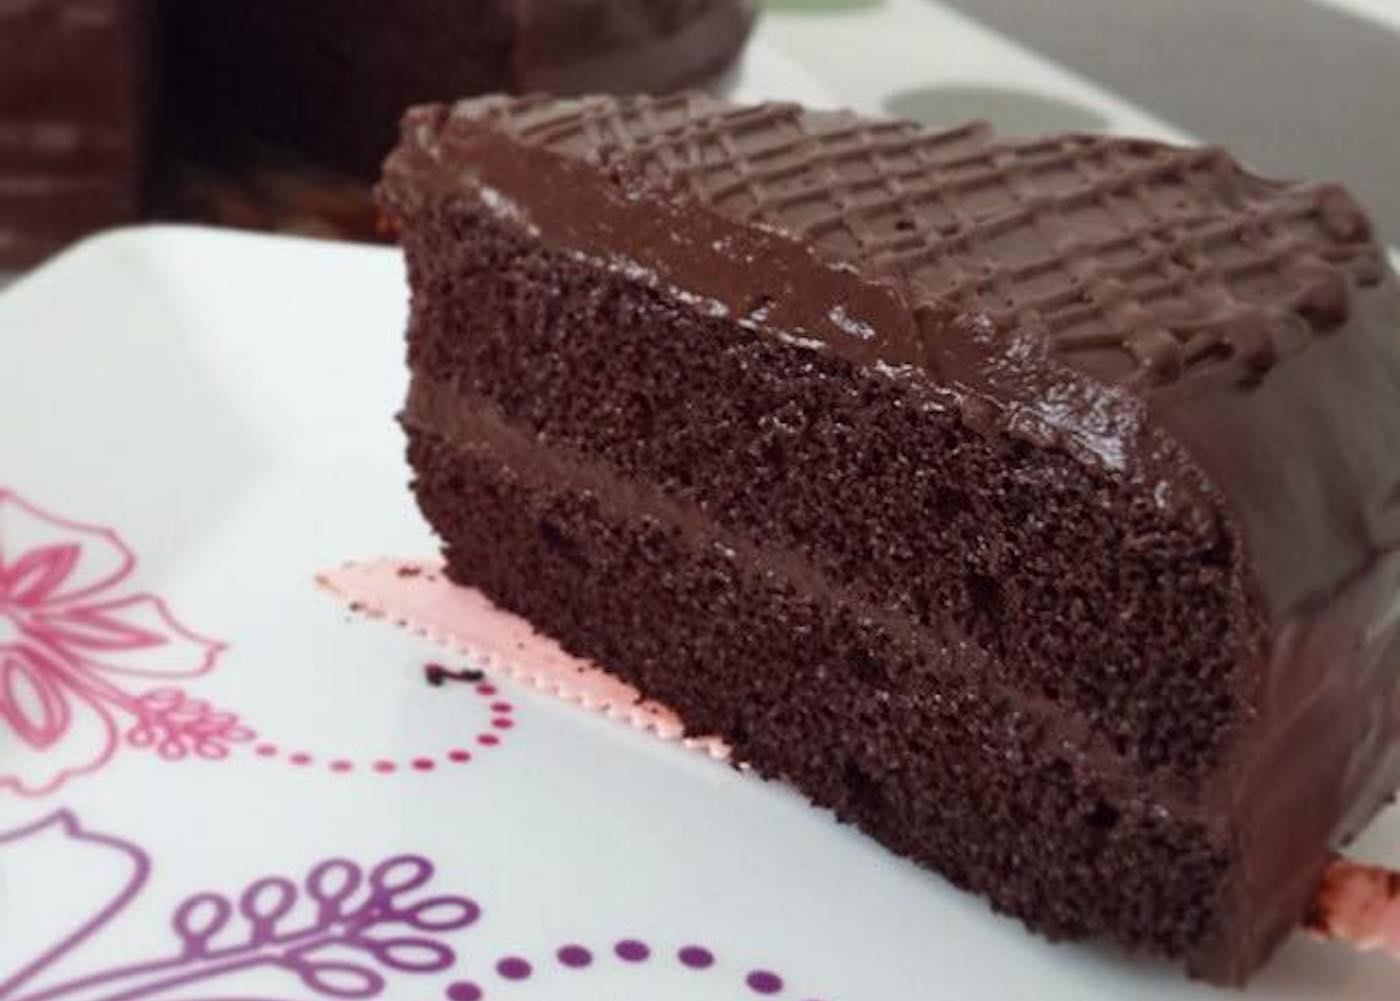 Singapore Best Chocolate Cakes: Jane's Cake Station Chocolate Fudge Cake